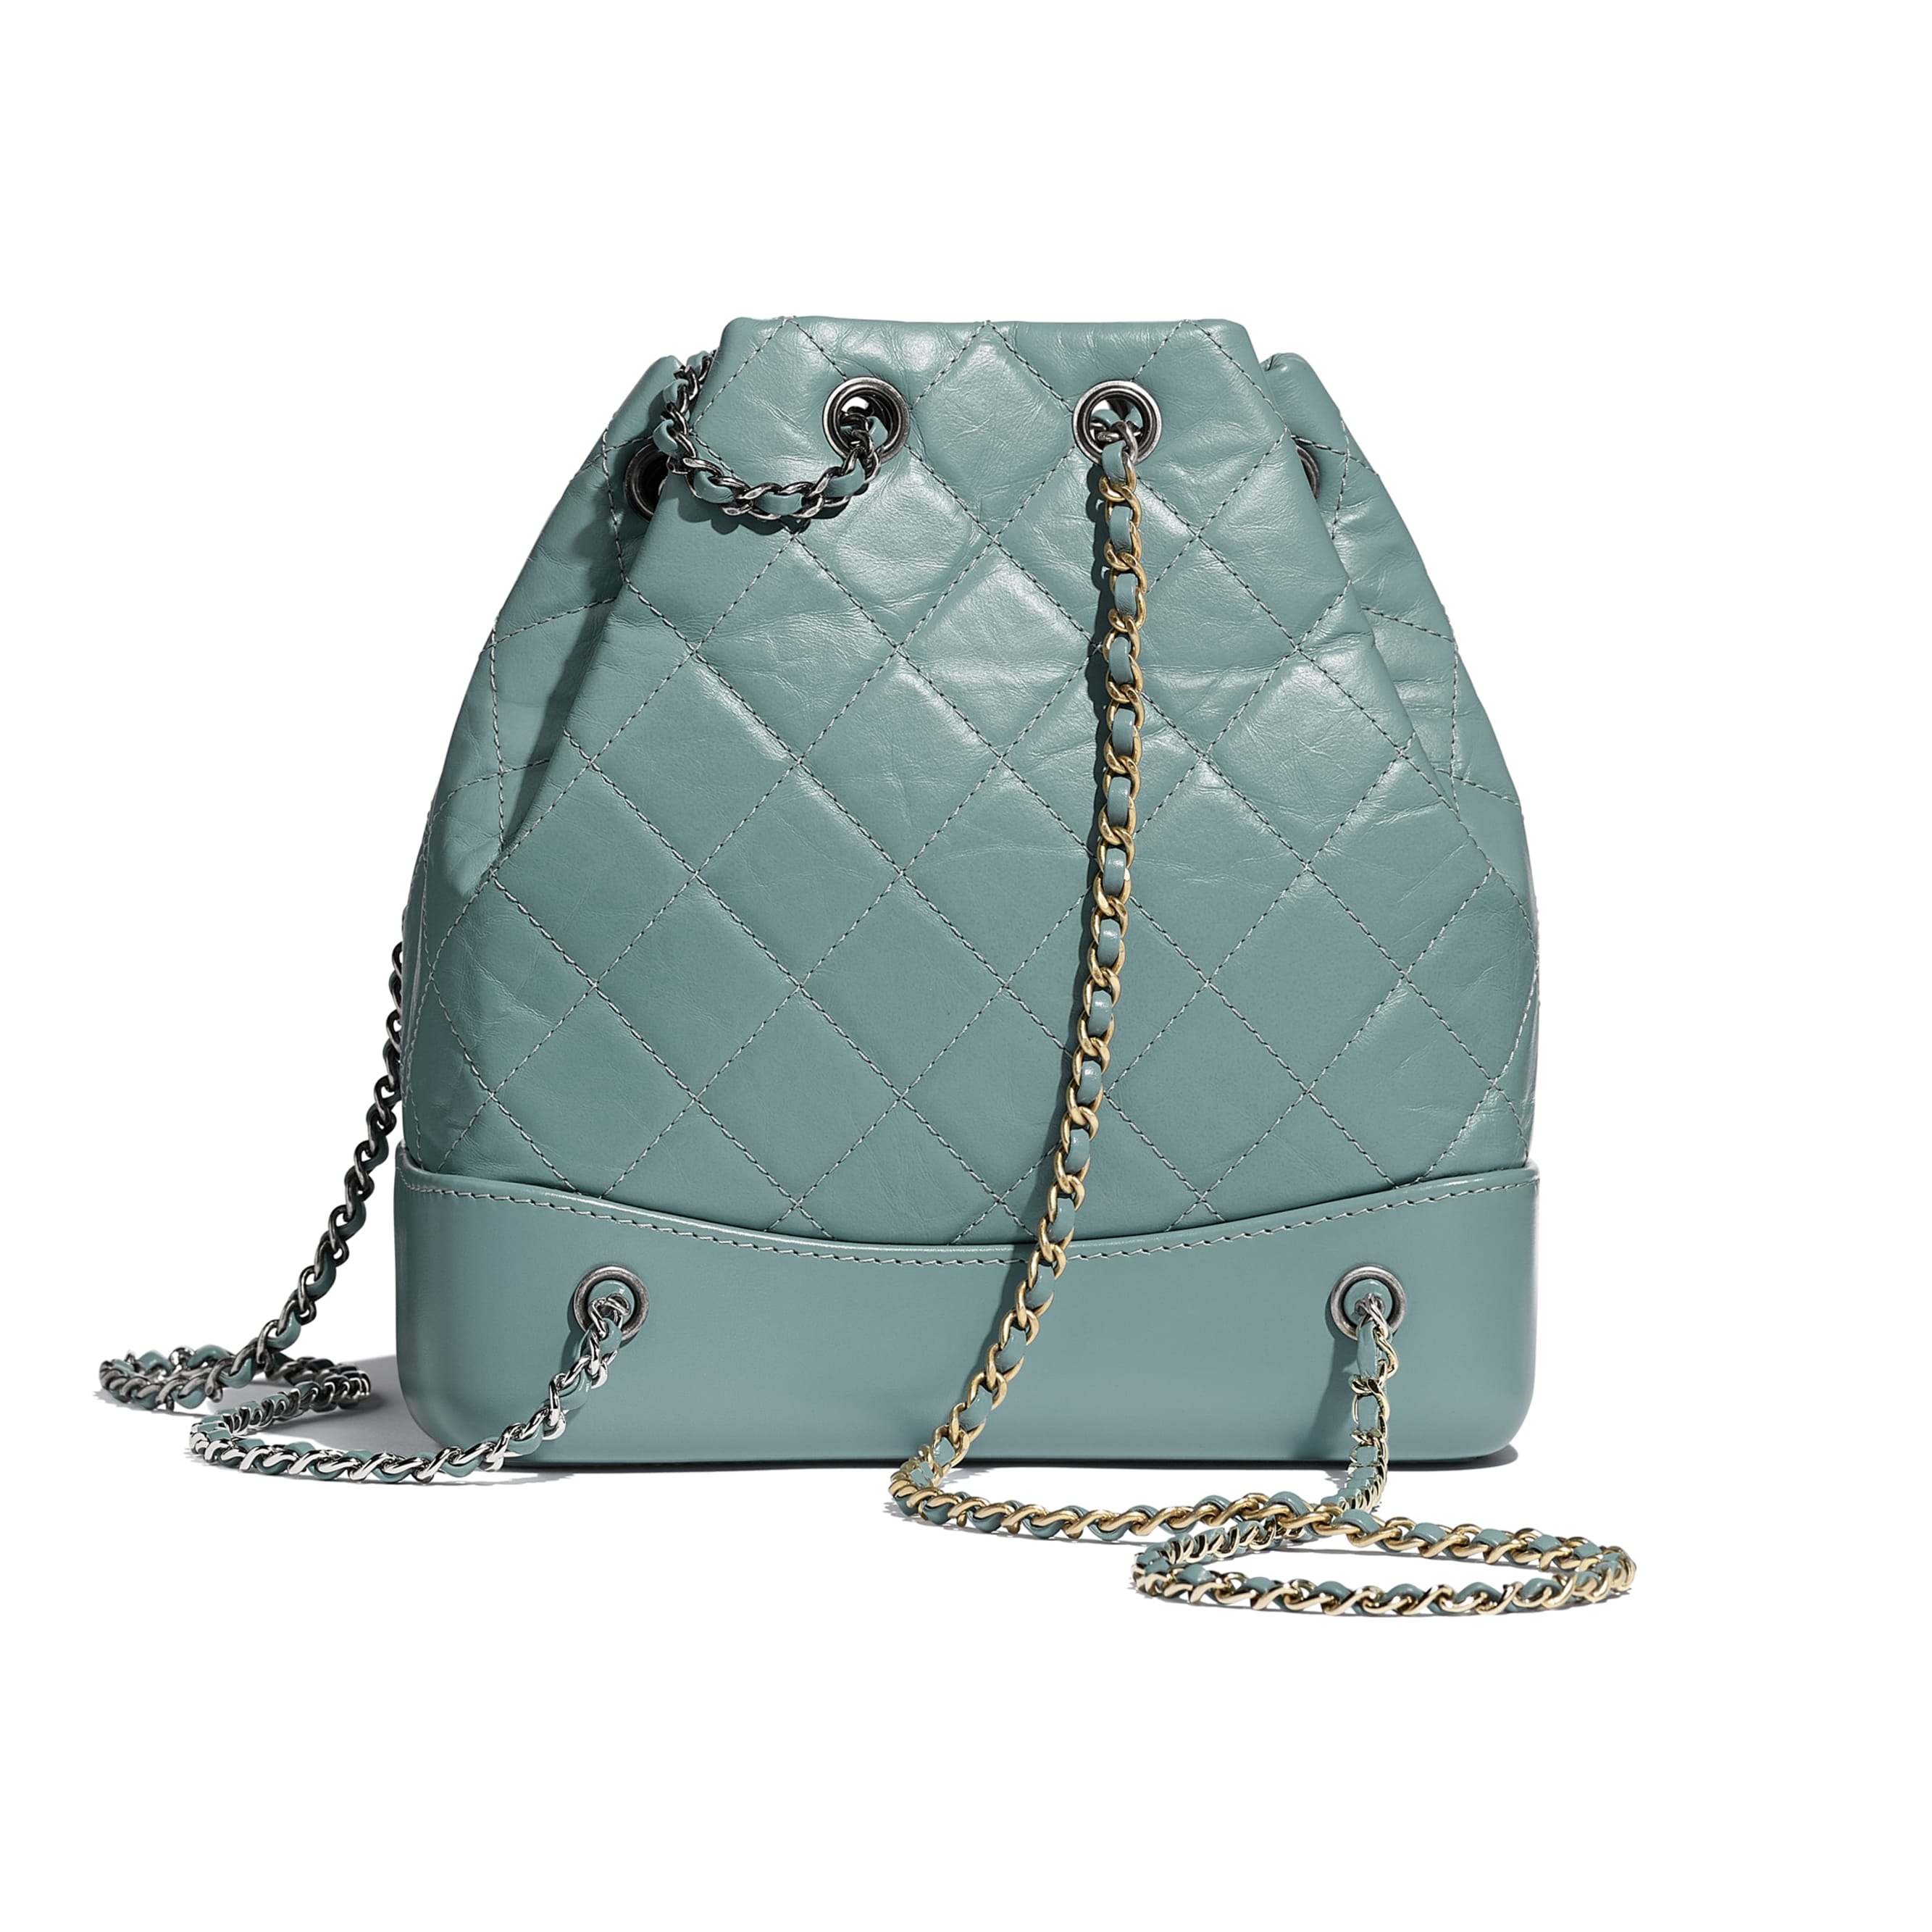 CHANEL'S GABRIELLE Small Backpack - Blue - Aged Calfskin, Smooth Calfskin, Gold-Tone, Silver-Tone & Ruthenium-Finish Metal - CHANEL - Alternative view - see standard sized version